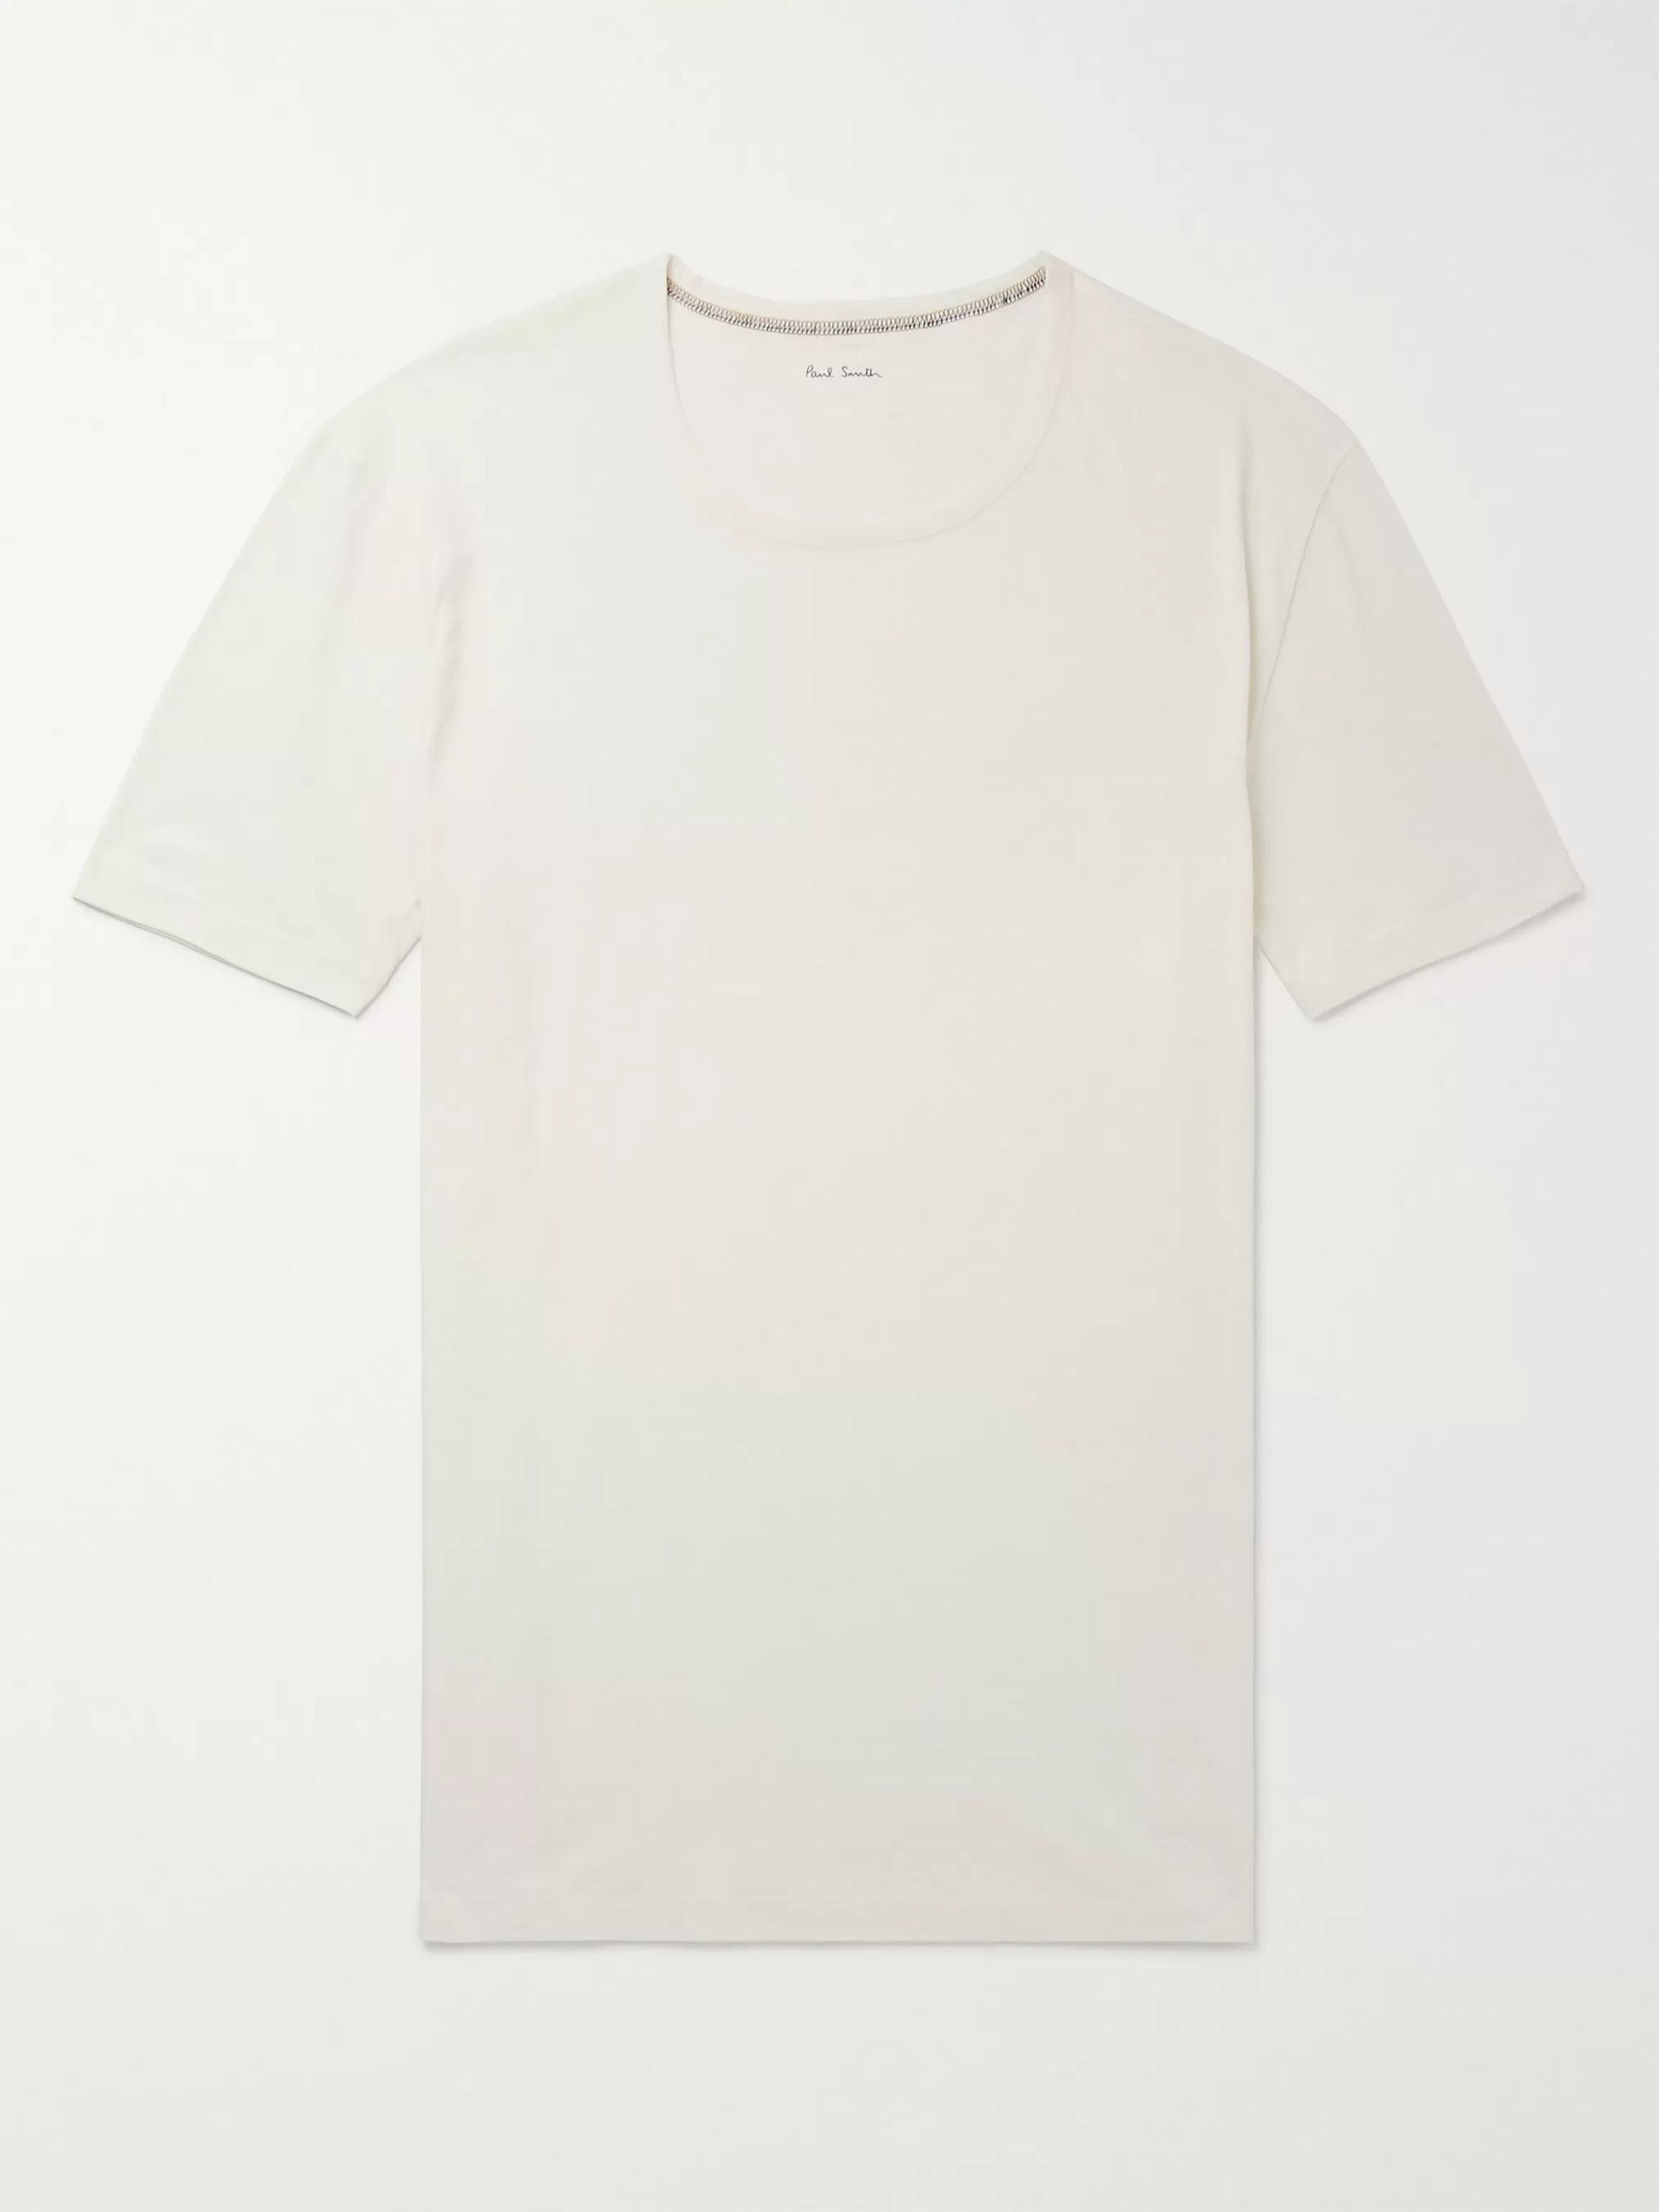 Paul Smith Cotton-Jersey T-Shirt